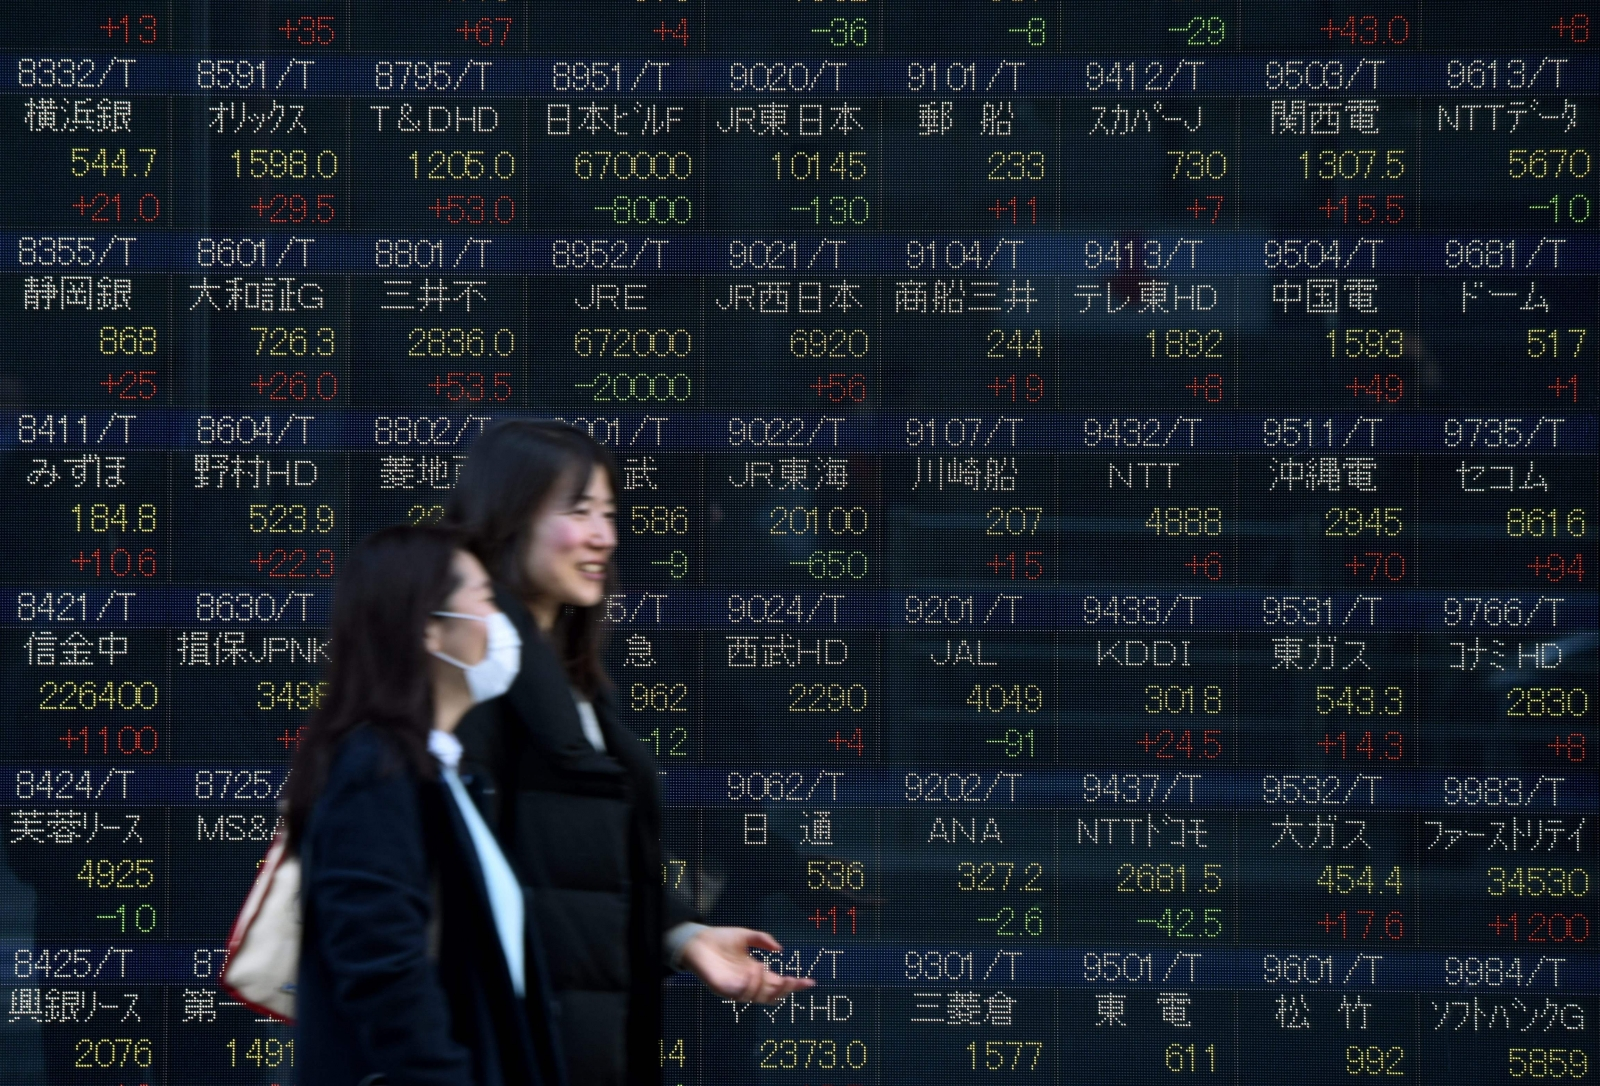 Most Asian markets lose ground reflecting nervousness amongst traders ahead of Fed Janet Yellen's speech